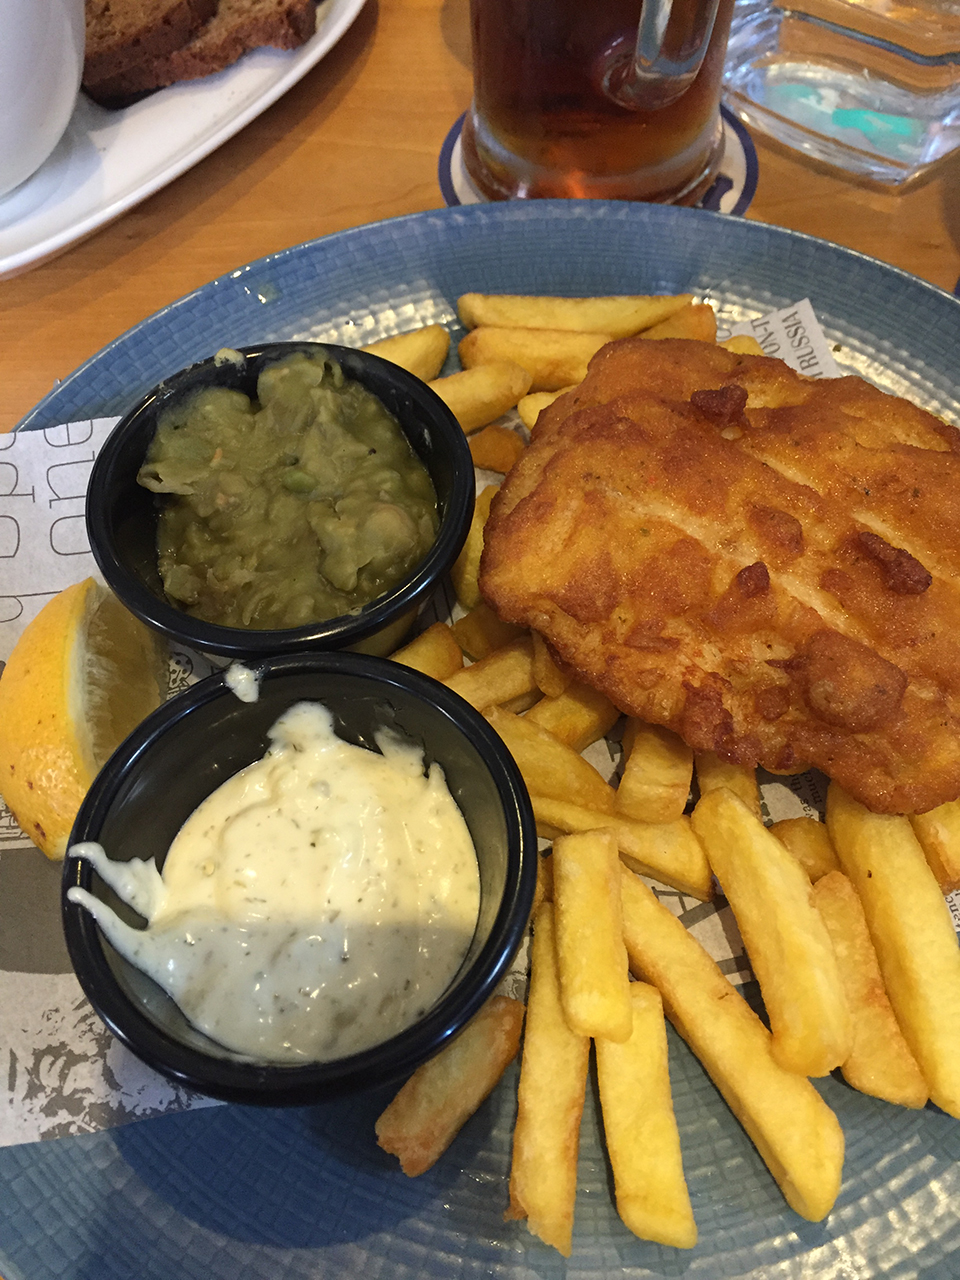 Fish and chips in Cobh, a town located east of Cork.